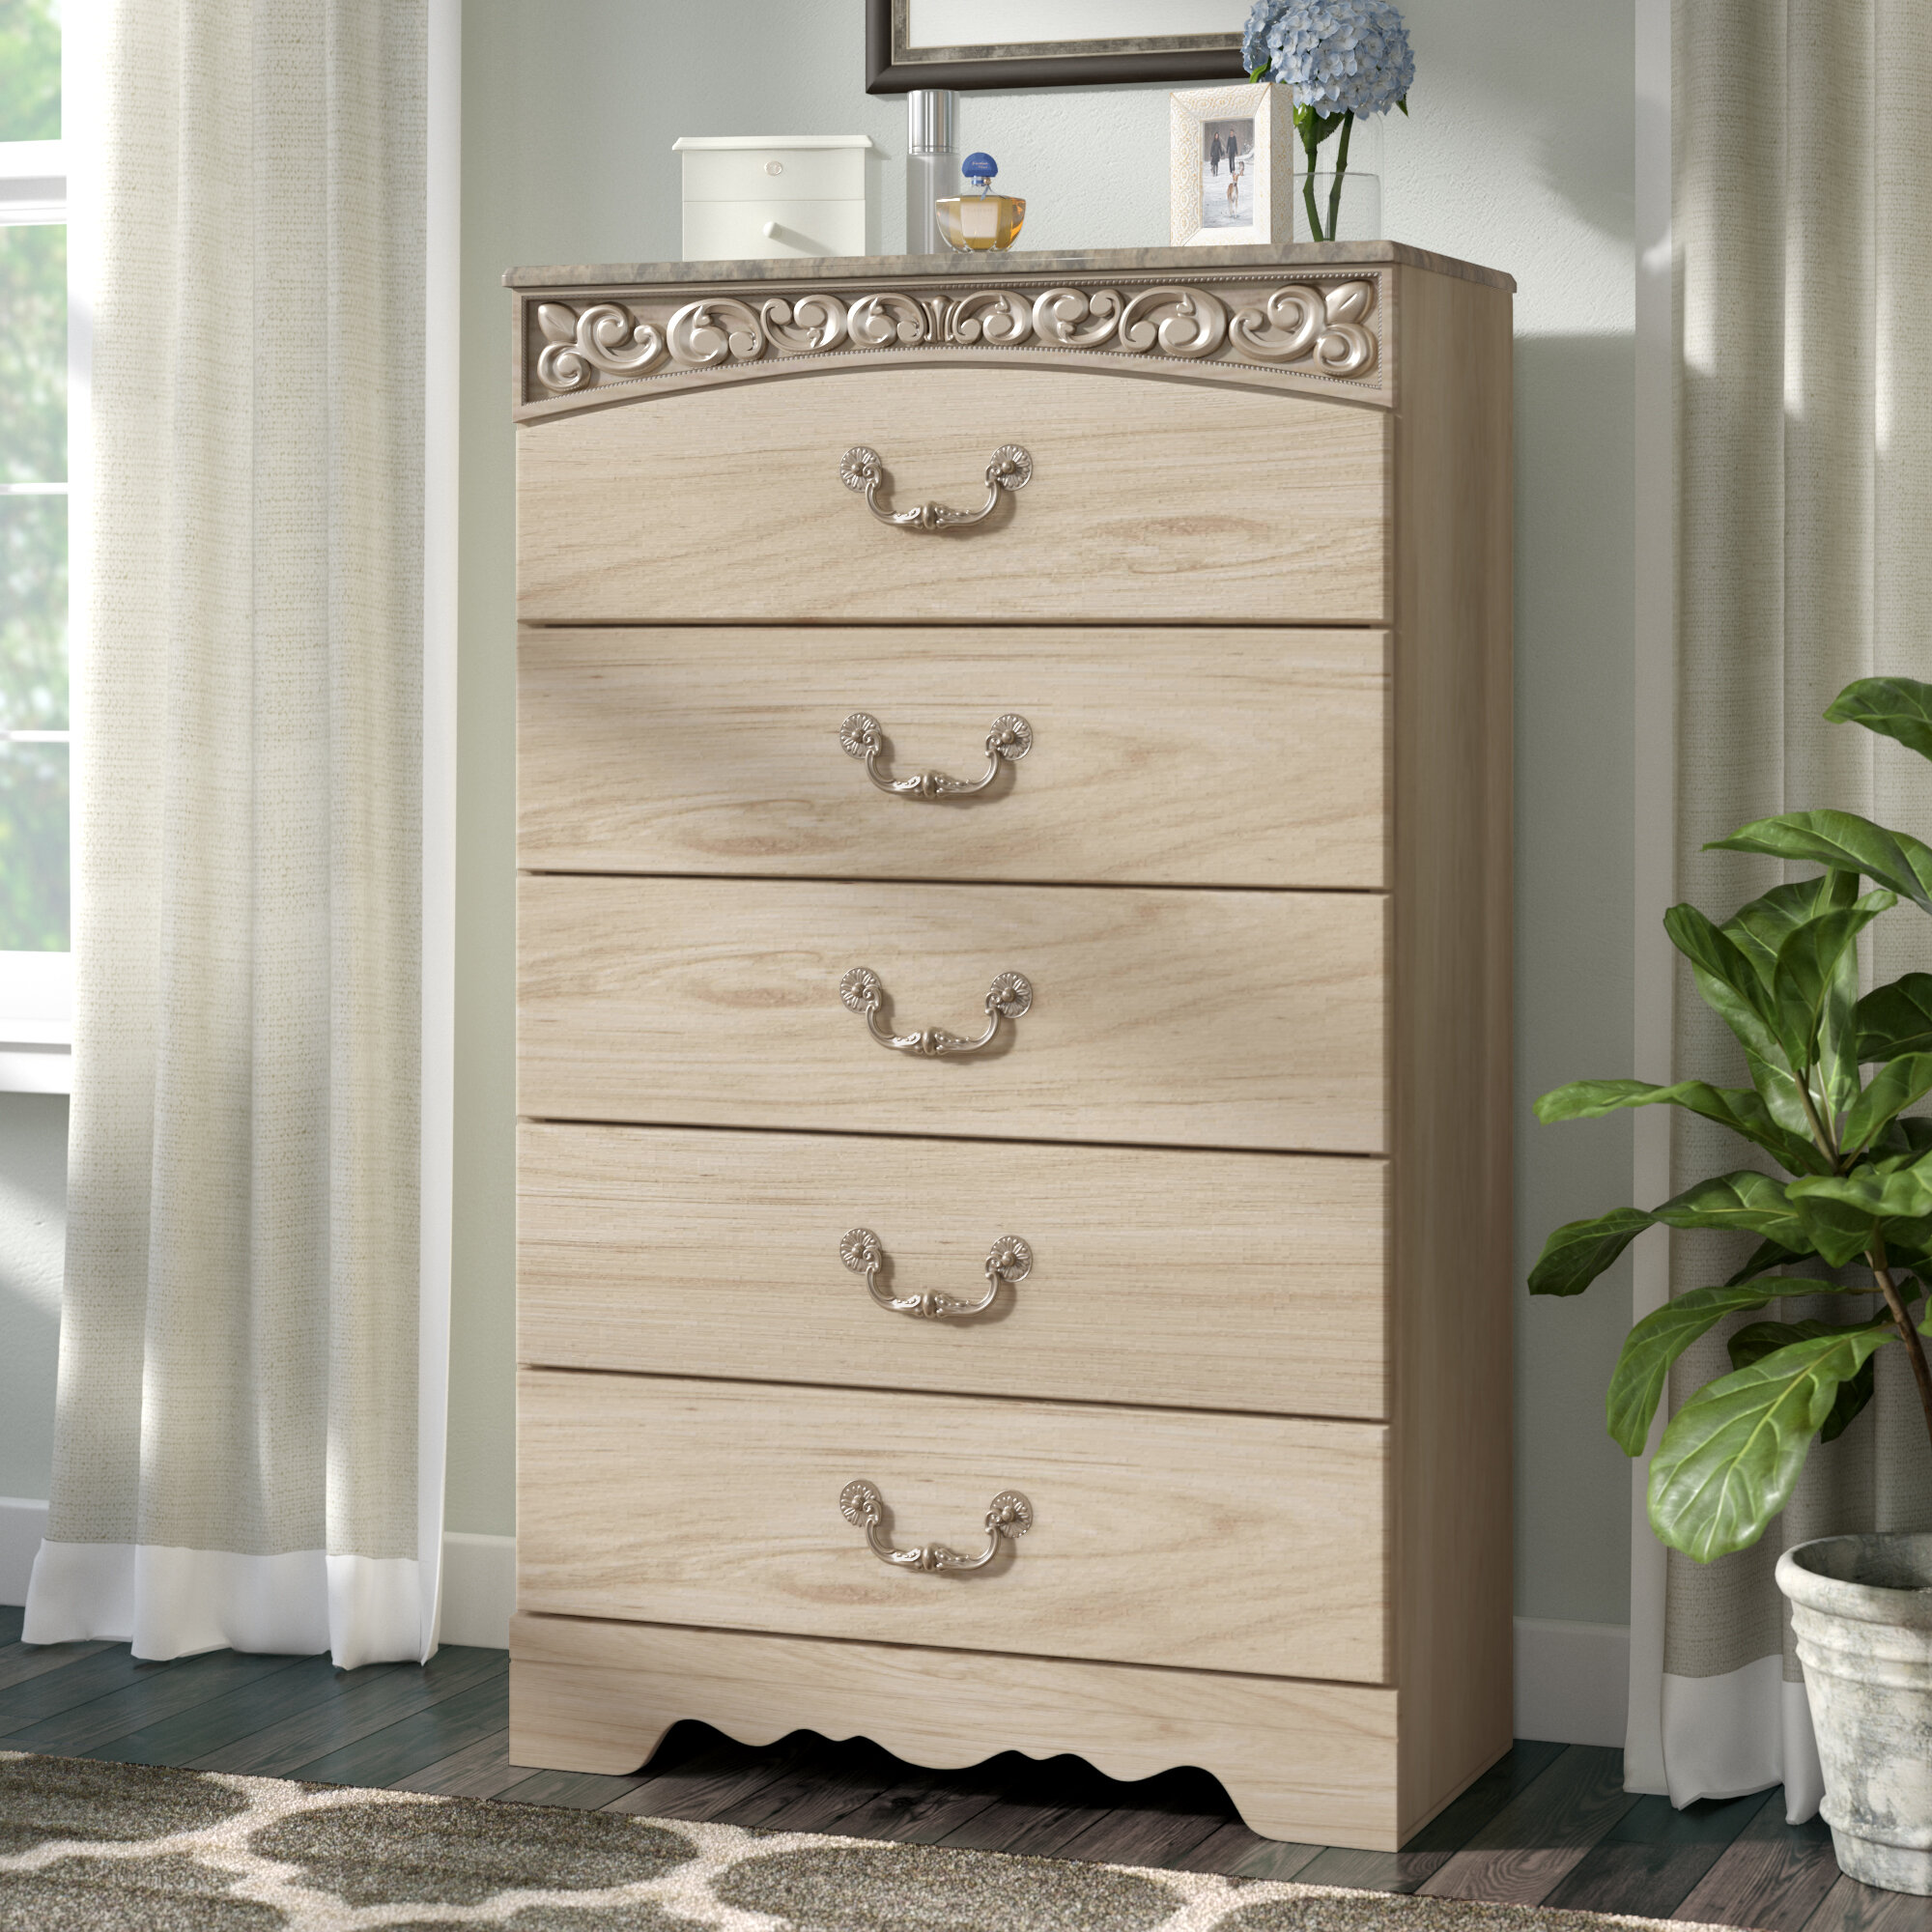 product monterey white by chest index id category drawer prepac k wdc page name chain